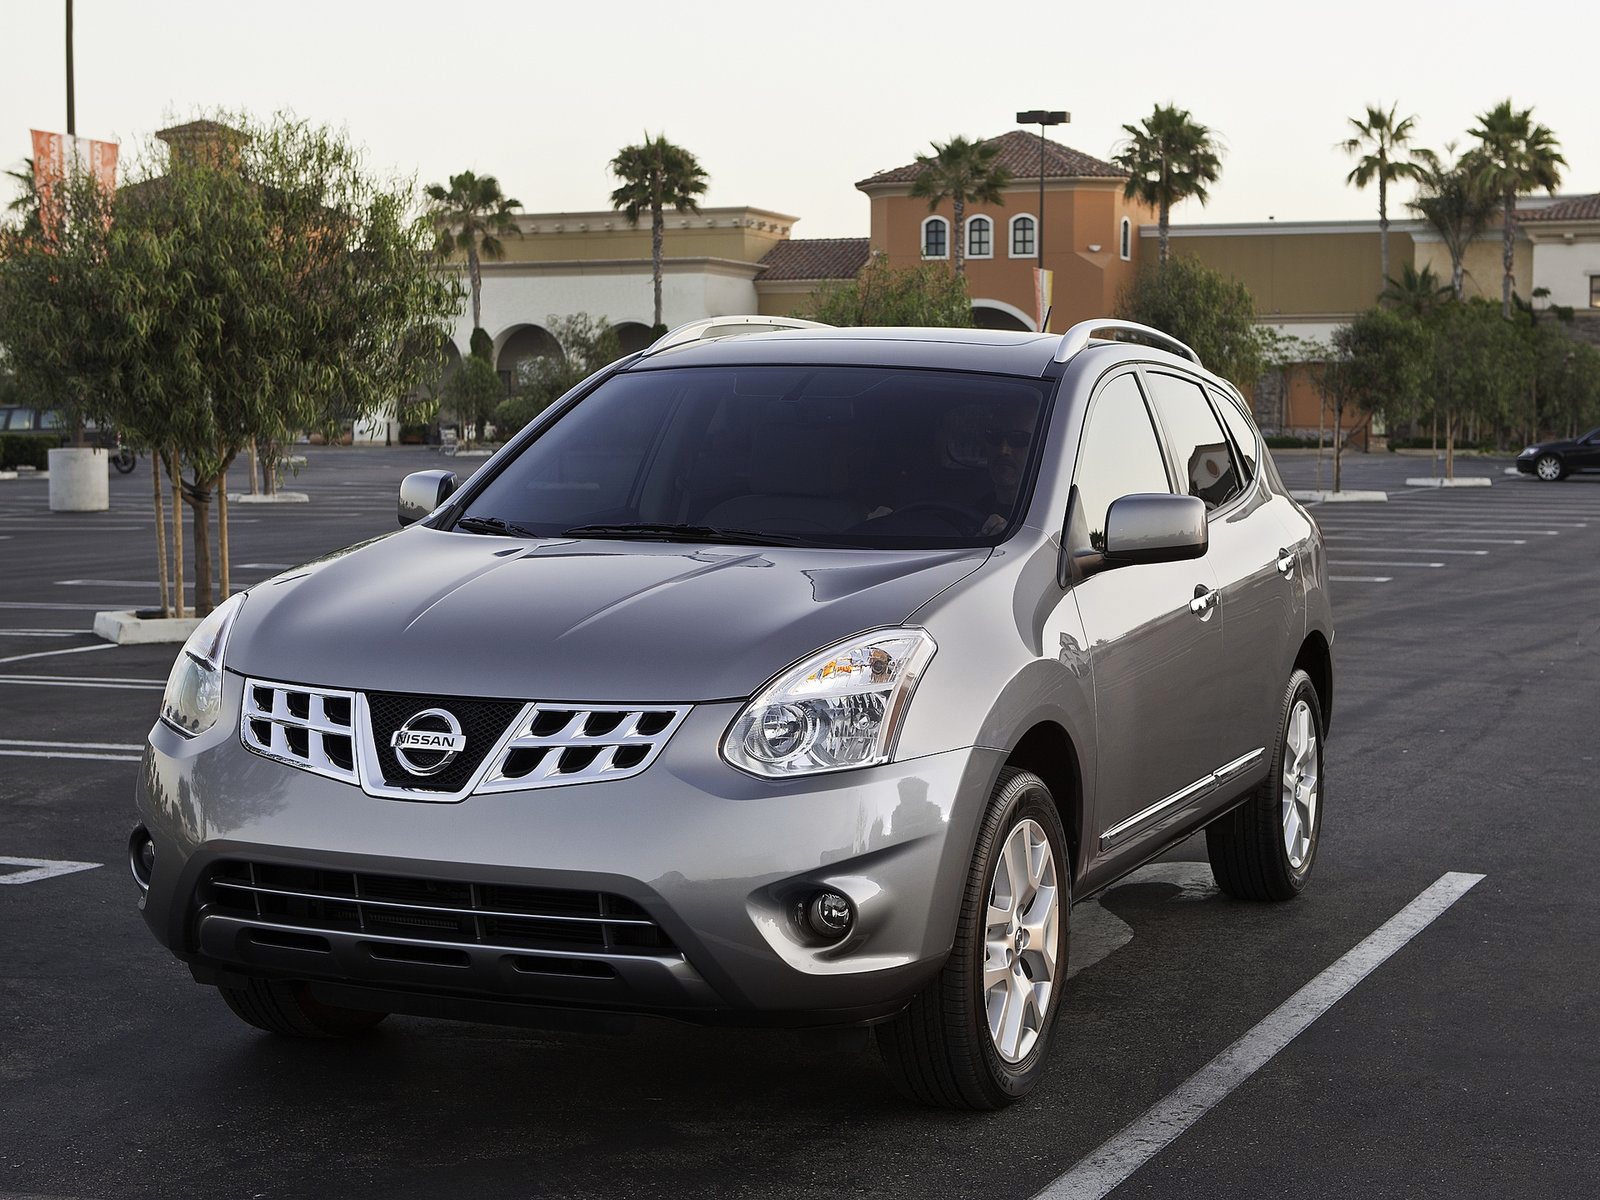 2011 Nissan Rogue Car Accident Lawyers Info Wallpapers